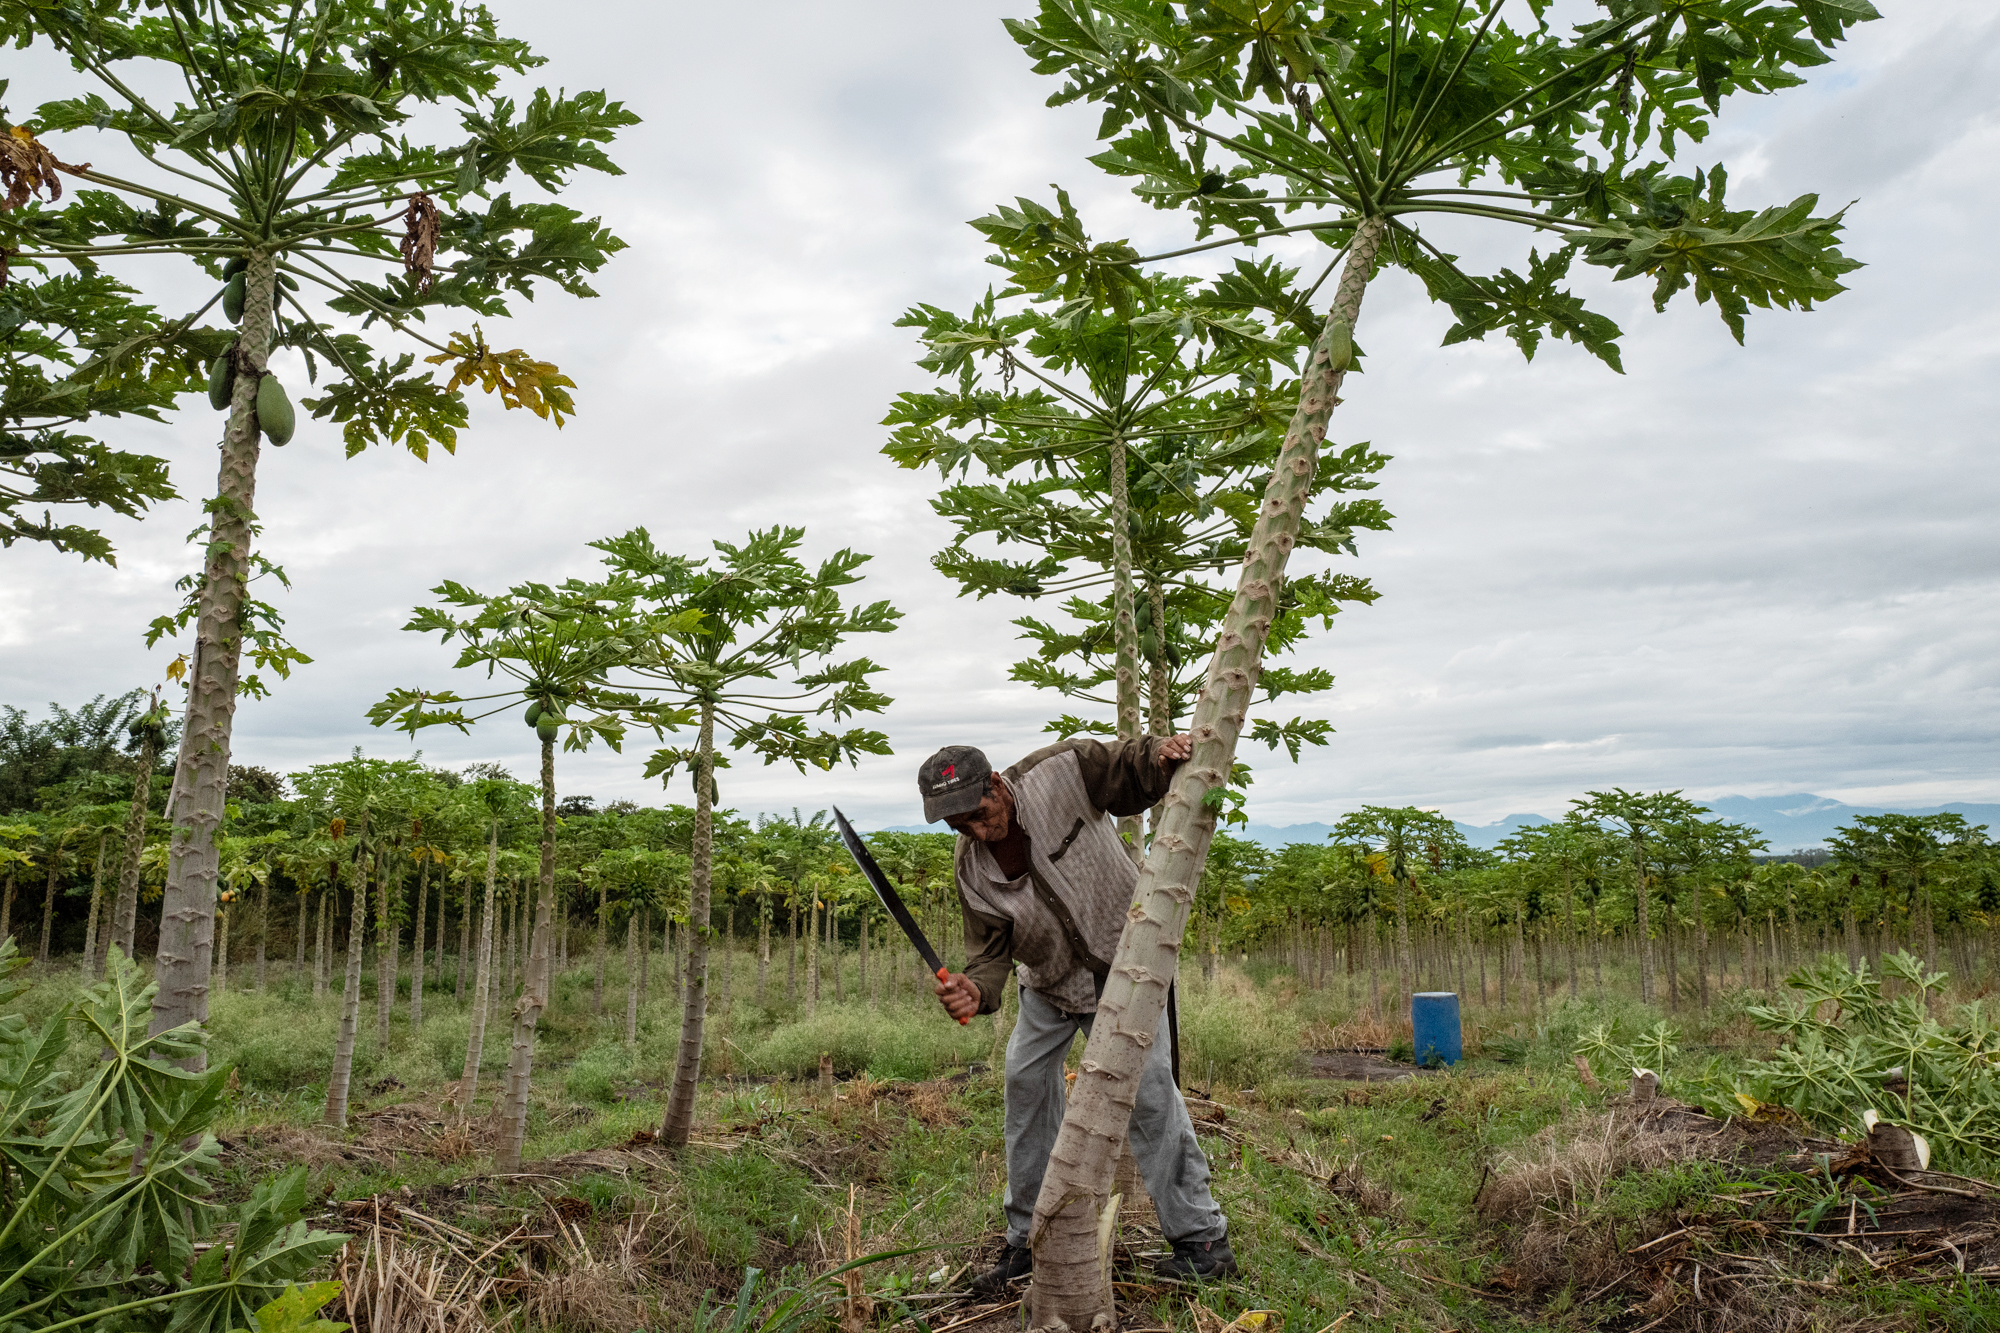 Jair Triviño cuts down a papaya tree in Ricaurte, Valle del Cauca on July 30, 2018.